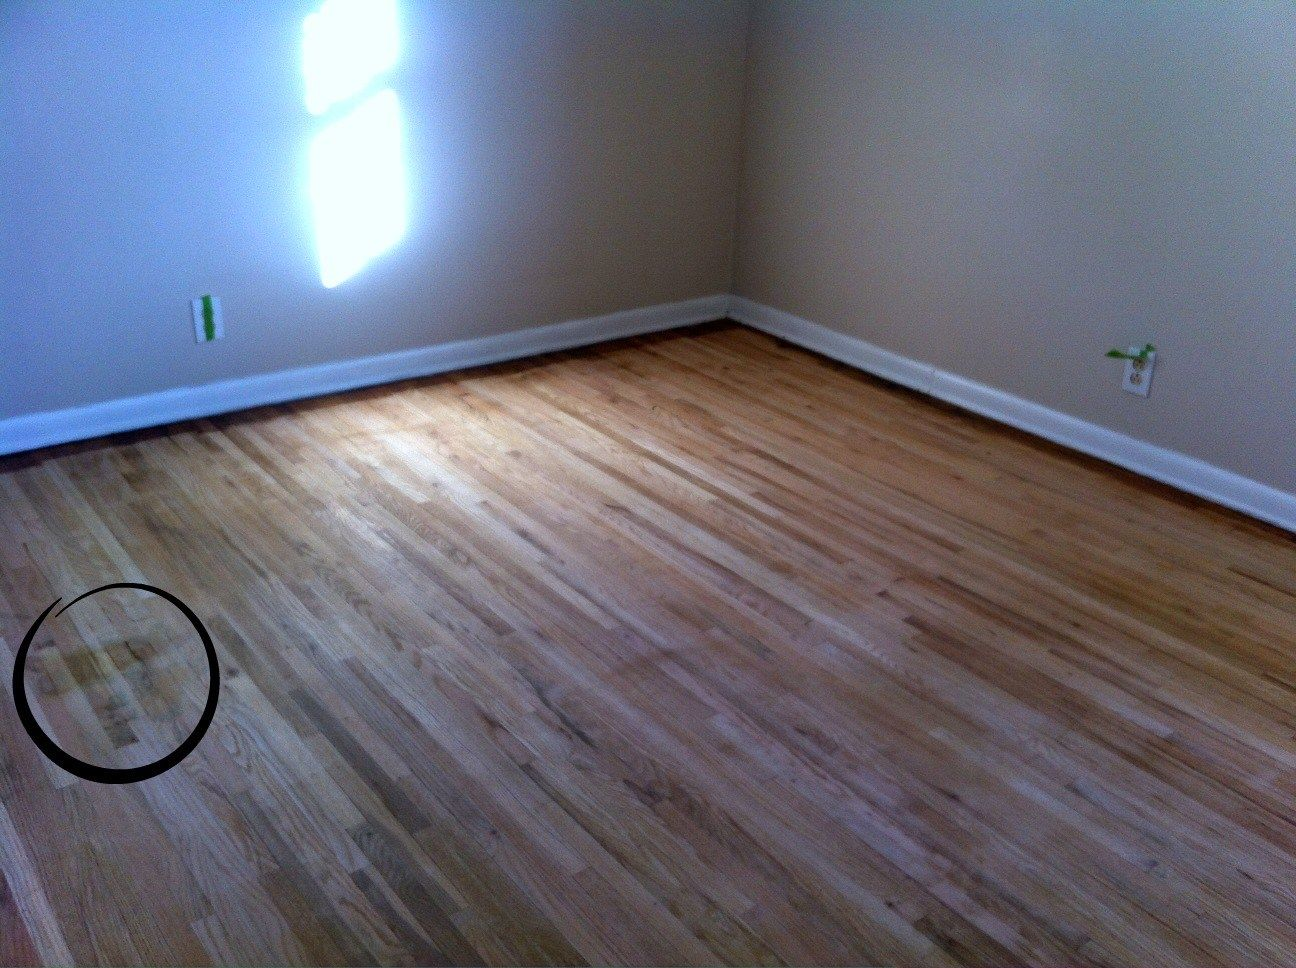 Removing Urine Stains From Hardwood Floors Staining wood